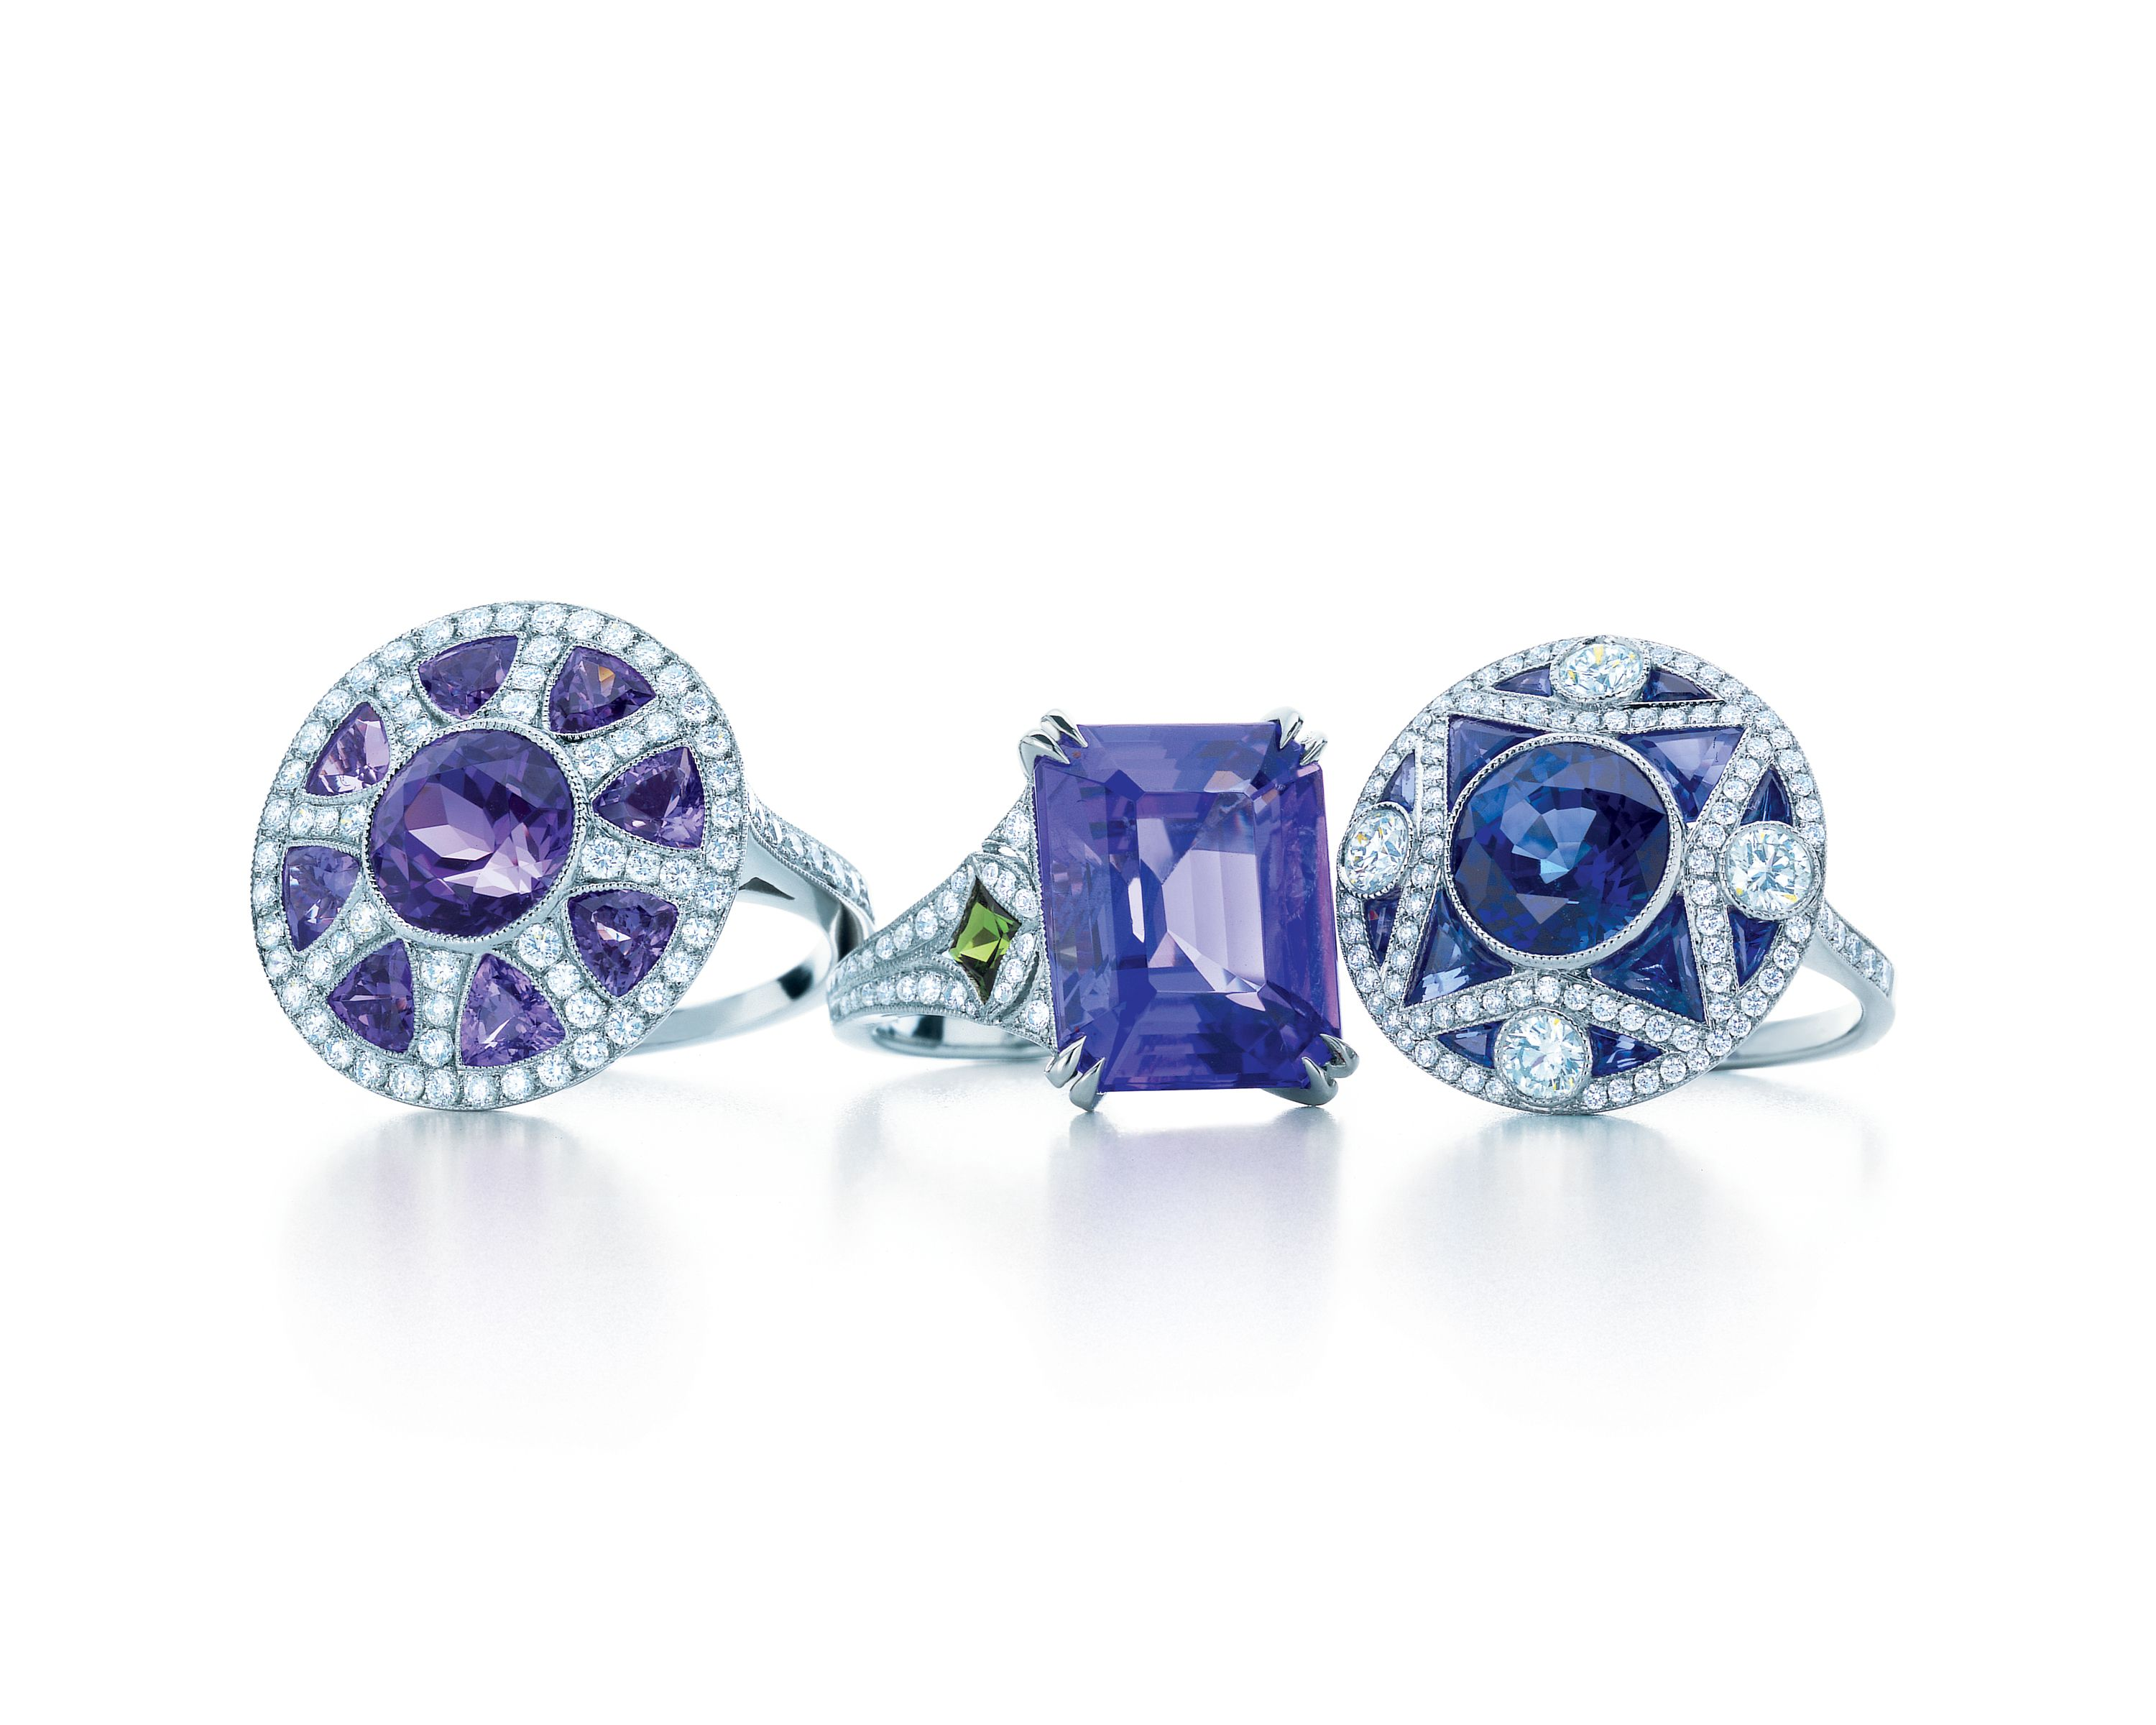 tiffany bgcolor fff ring co jewellery pt tiffanyco mode platinum reebonz tanzanite united diamond states us soleste pad